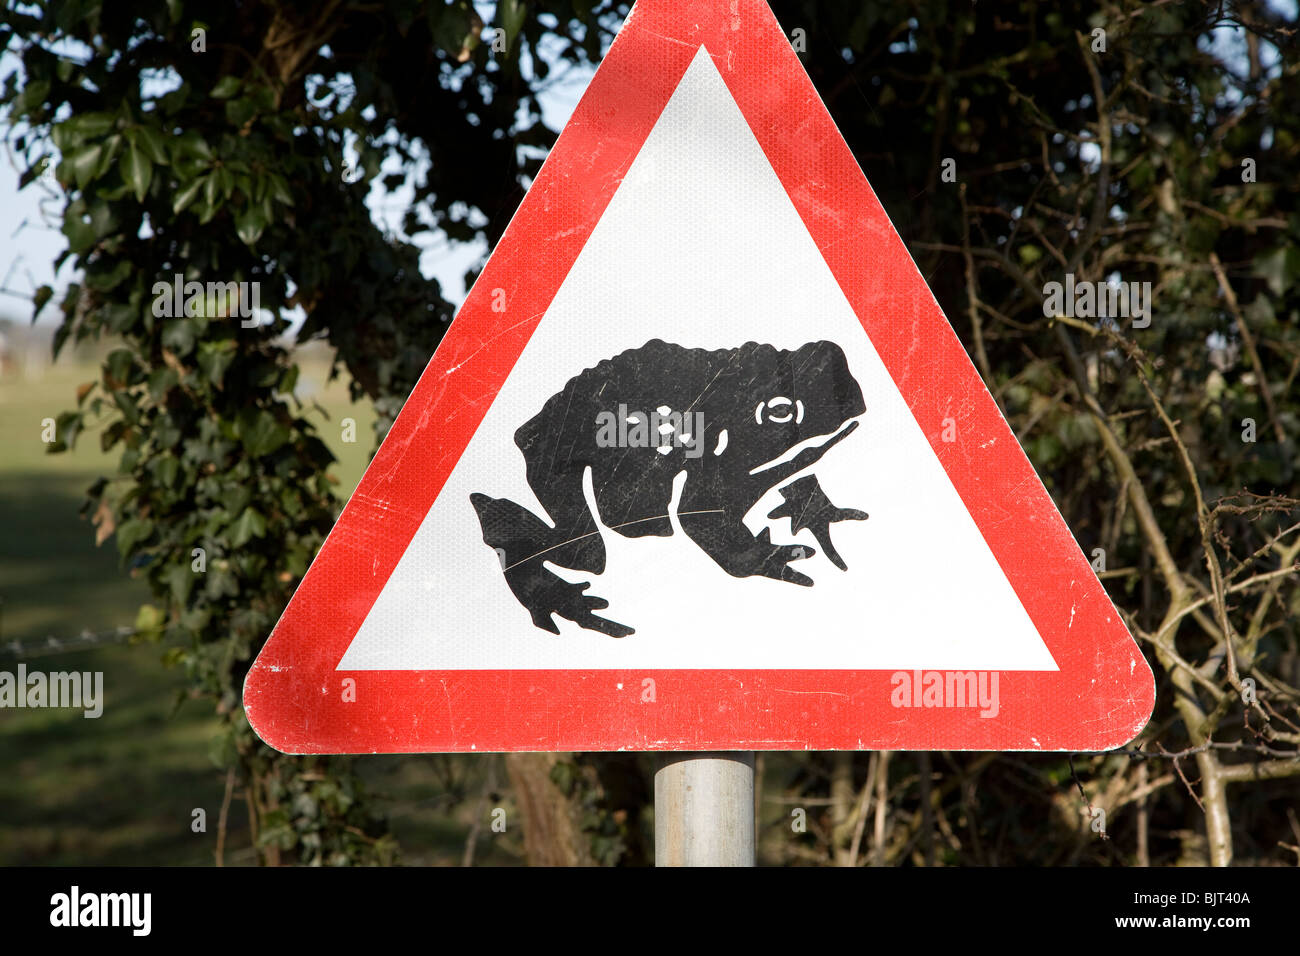 Red triangular road sign of frog or toad - Stock Image